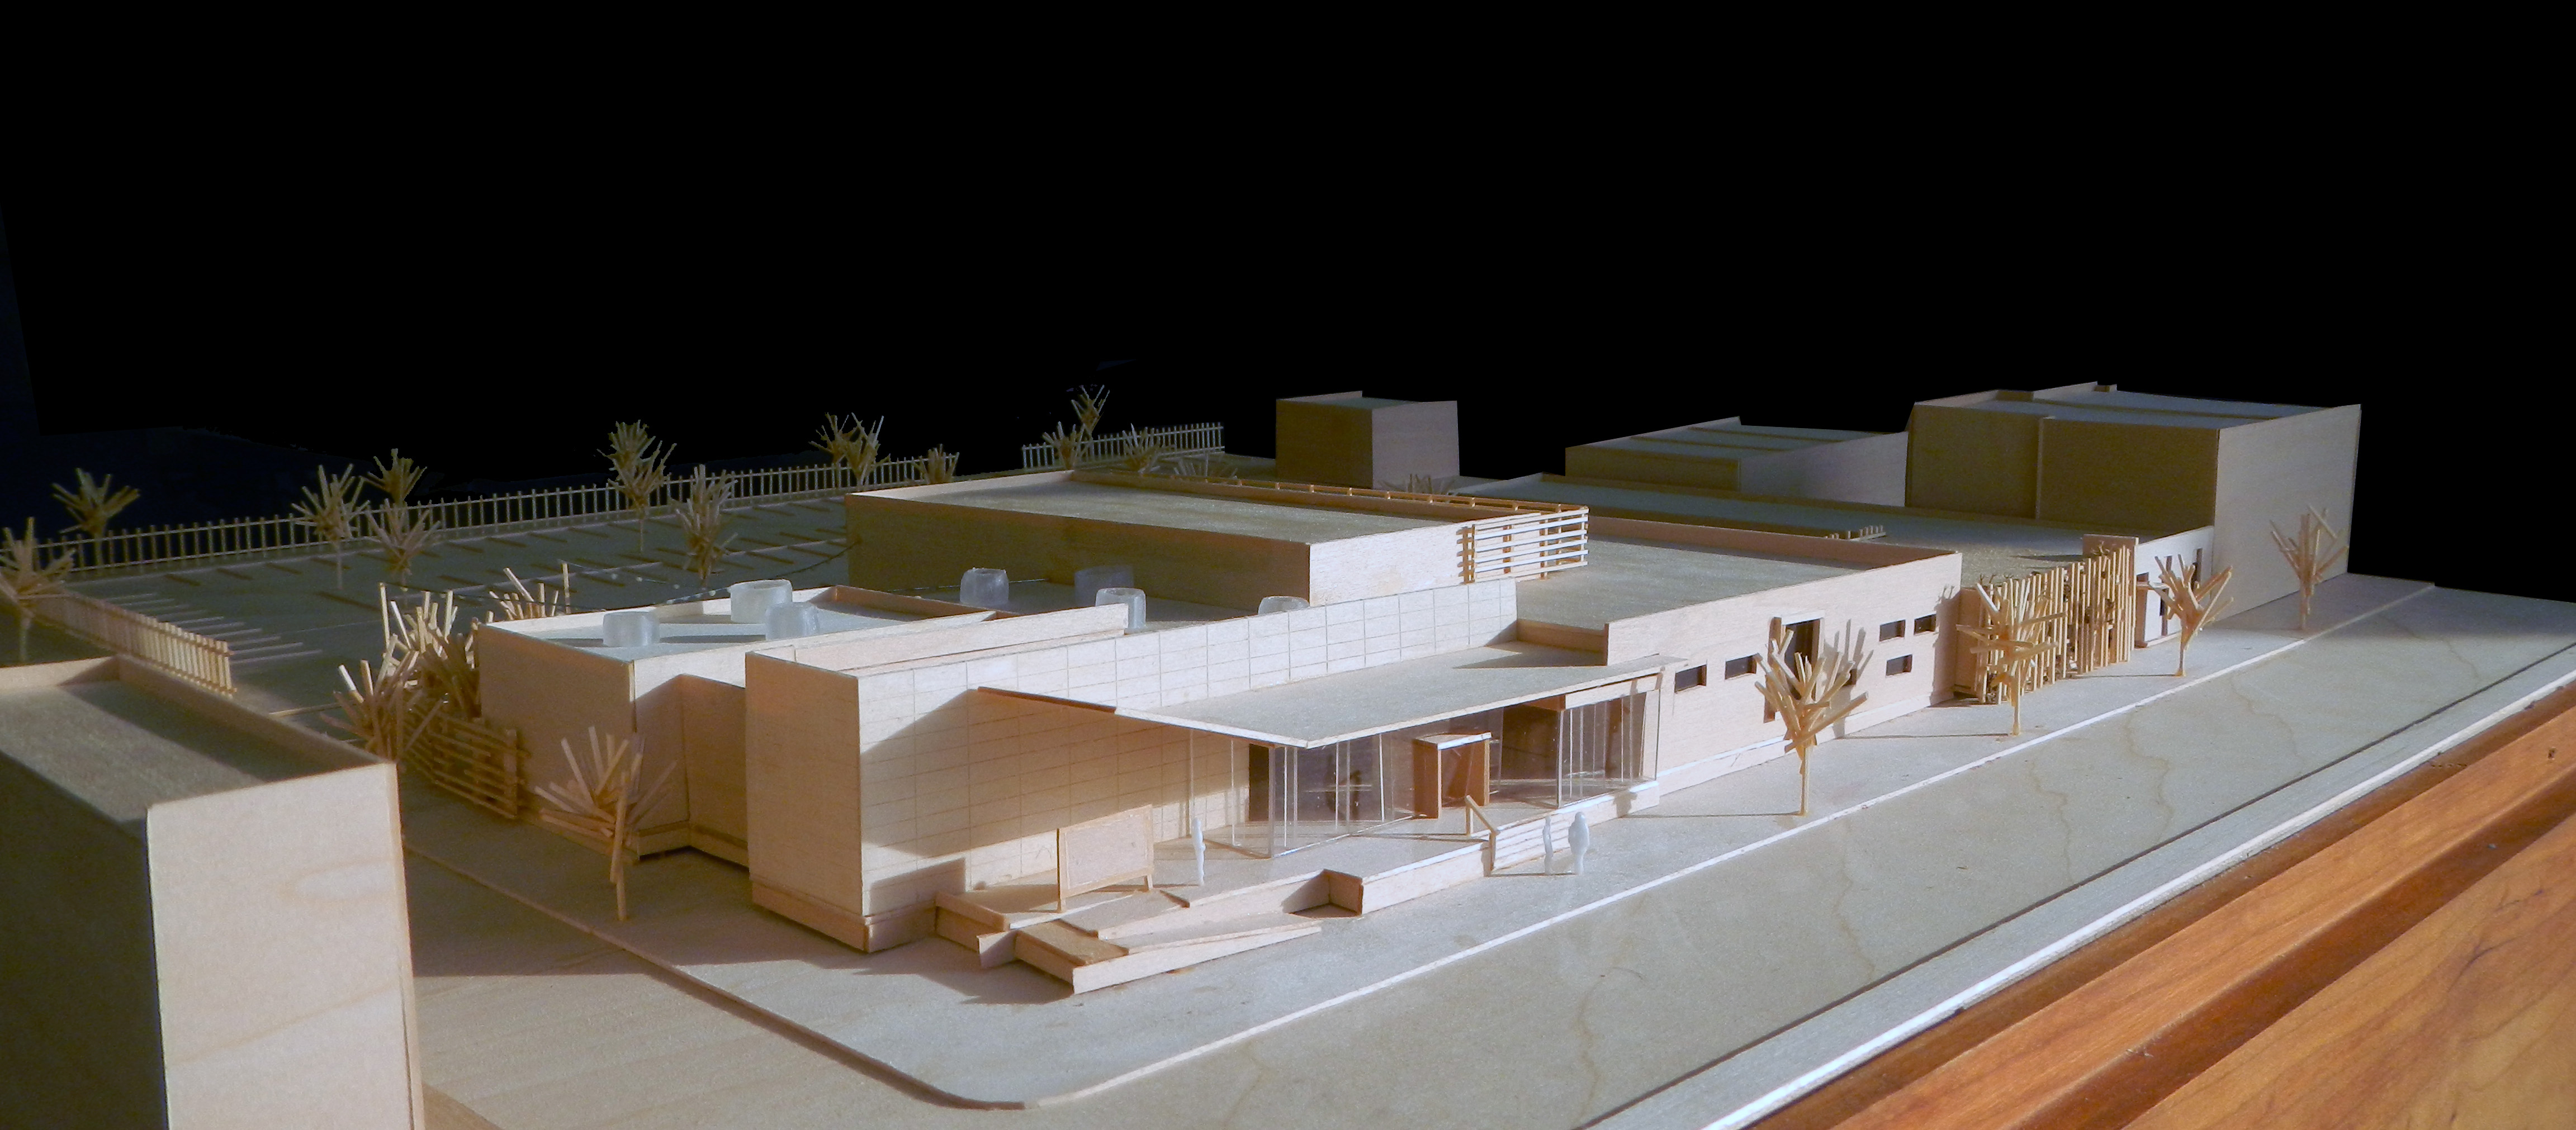 El Corazón Cultural Center model | courtesy of WRT